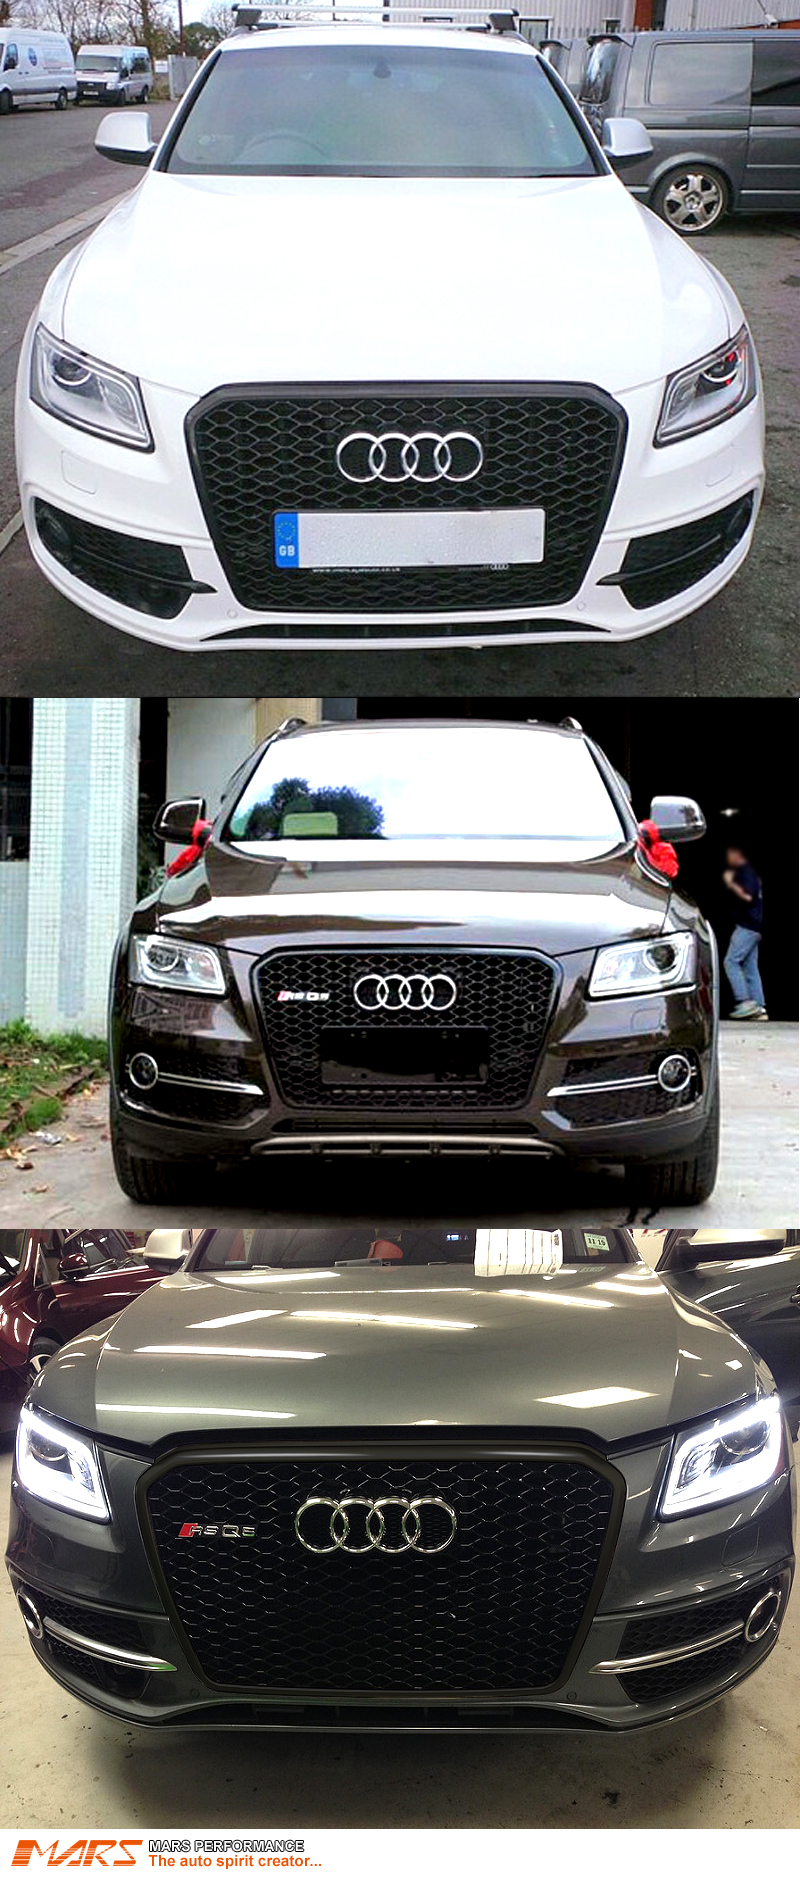 gloss black honeycomb rs q5 style front bumper grille grill for audi q5 8r 13 16 ebay. Black Bedroom Furniture Sets. Home Design Ideas